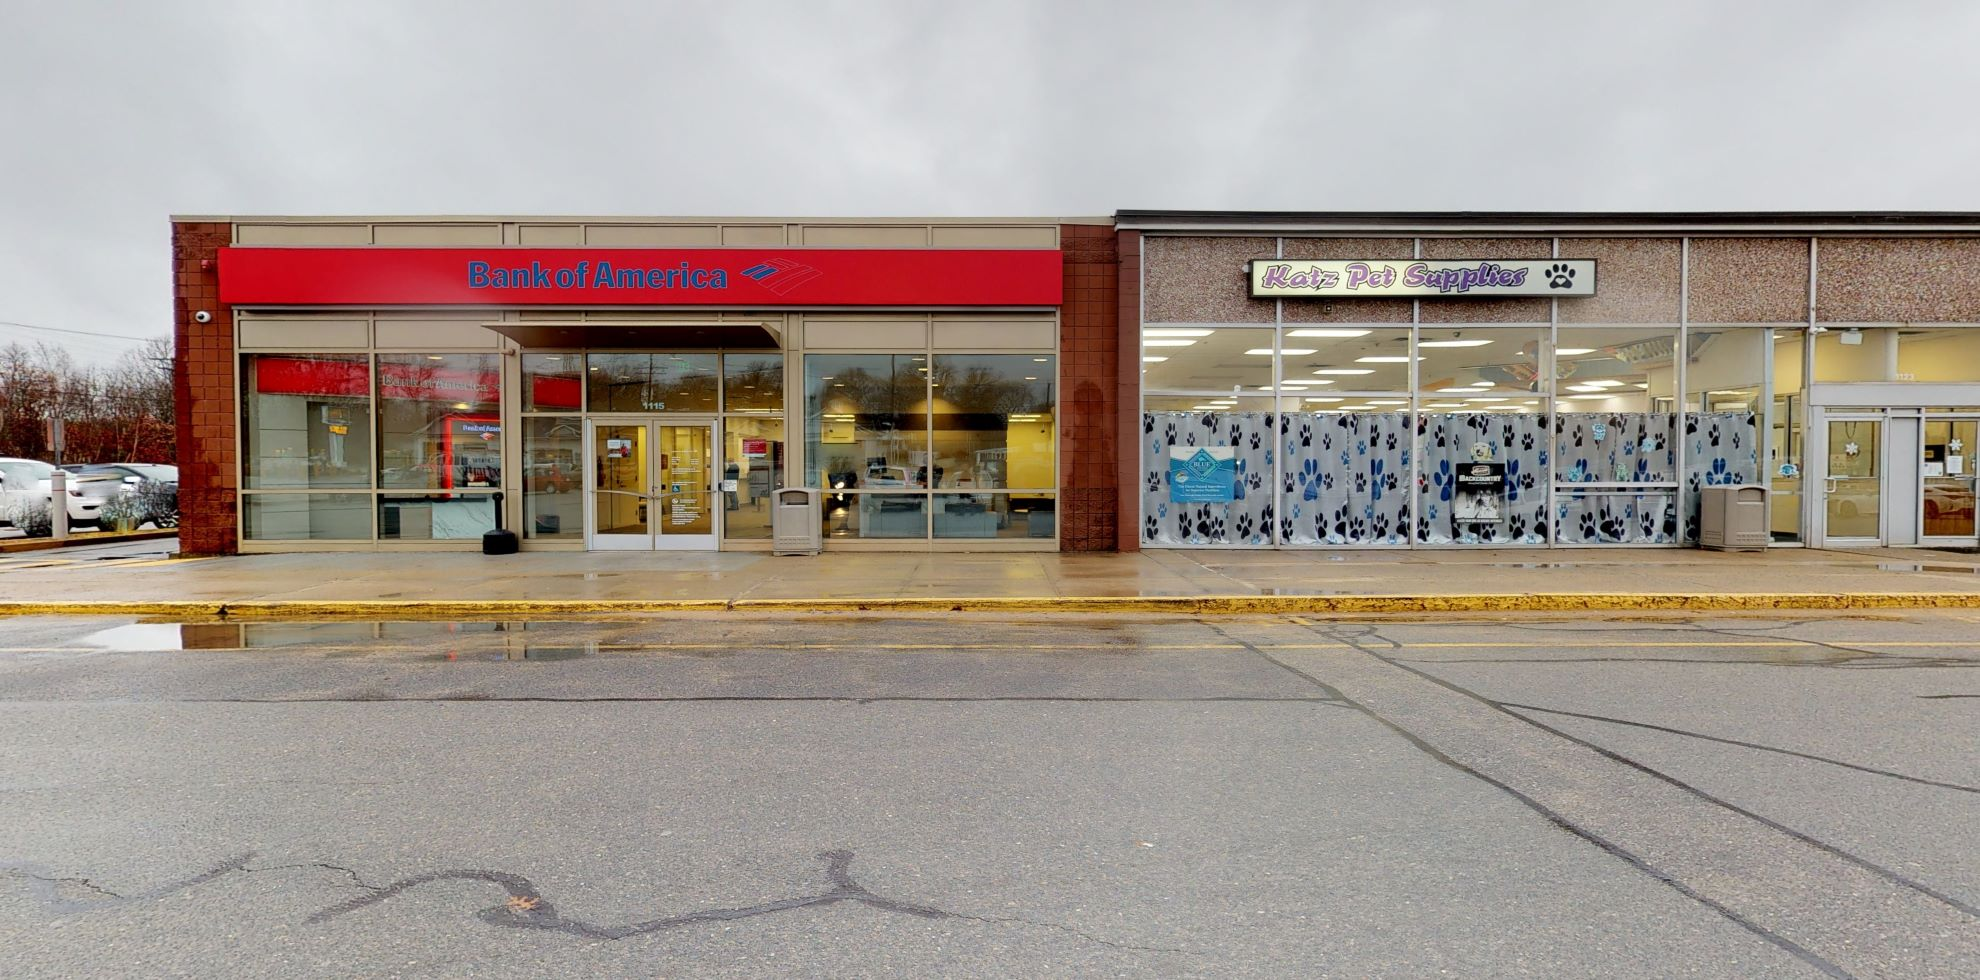 Bank of America financial center with drive-thru ATM | 1115 Grand Army Hwy, Somerset, MA 02726